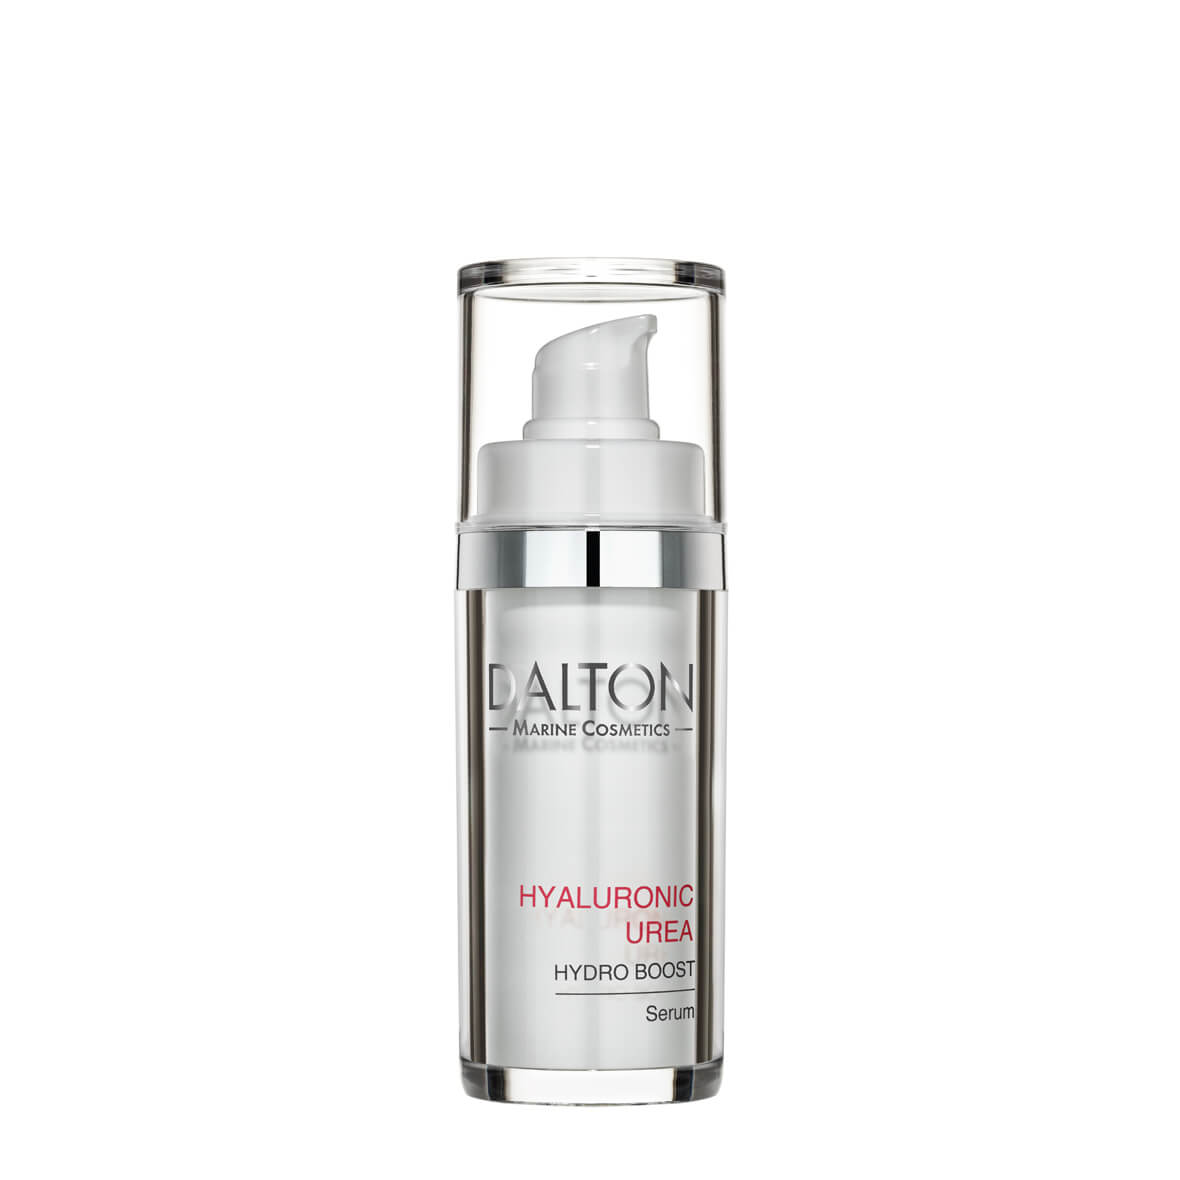 Hyaluronic Urea Hydro Boost Serum